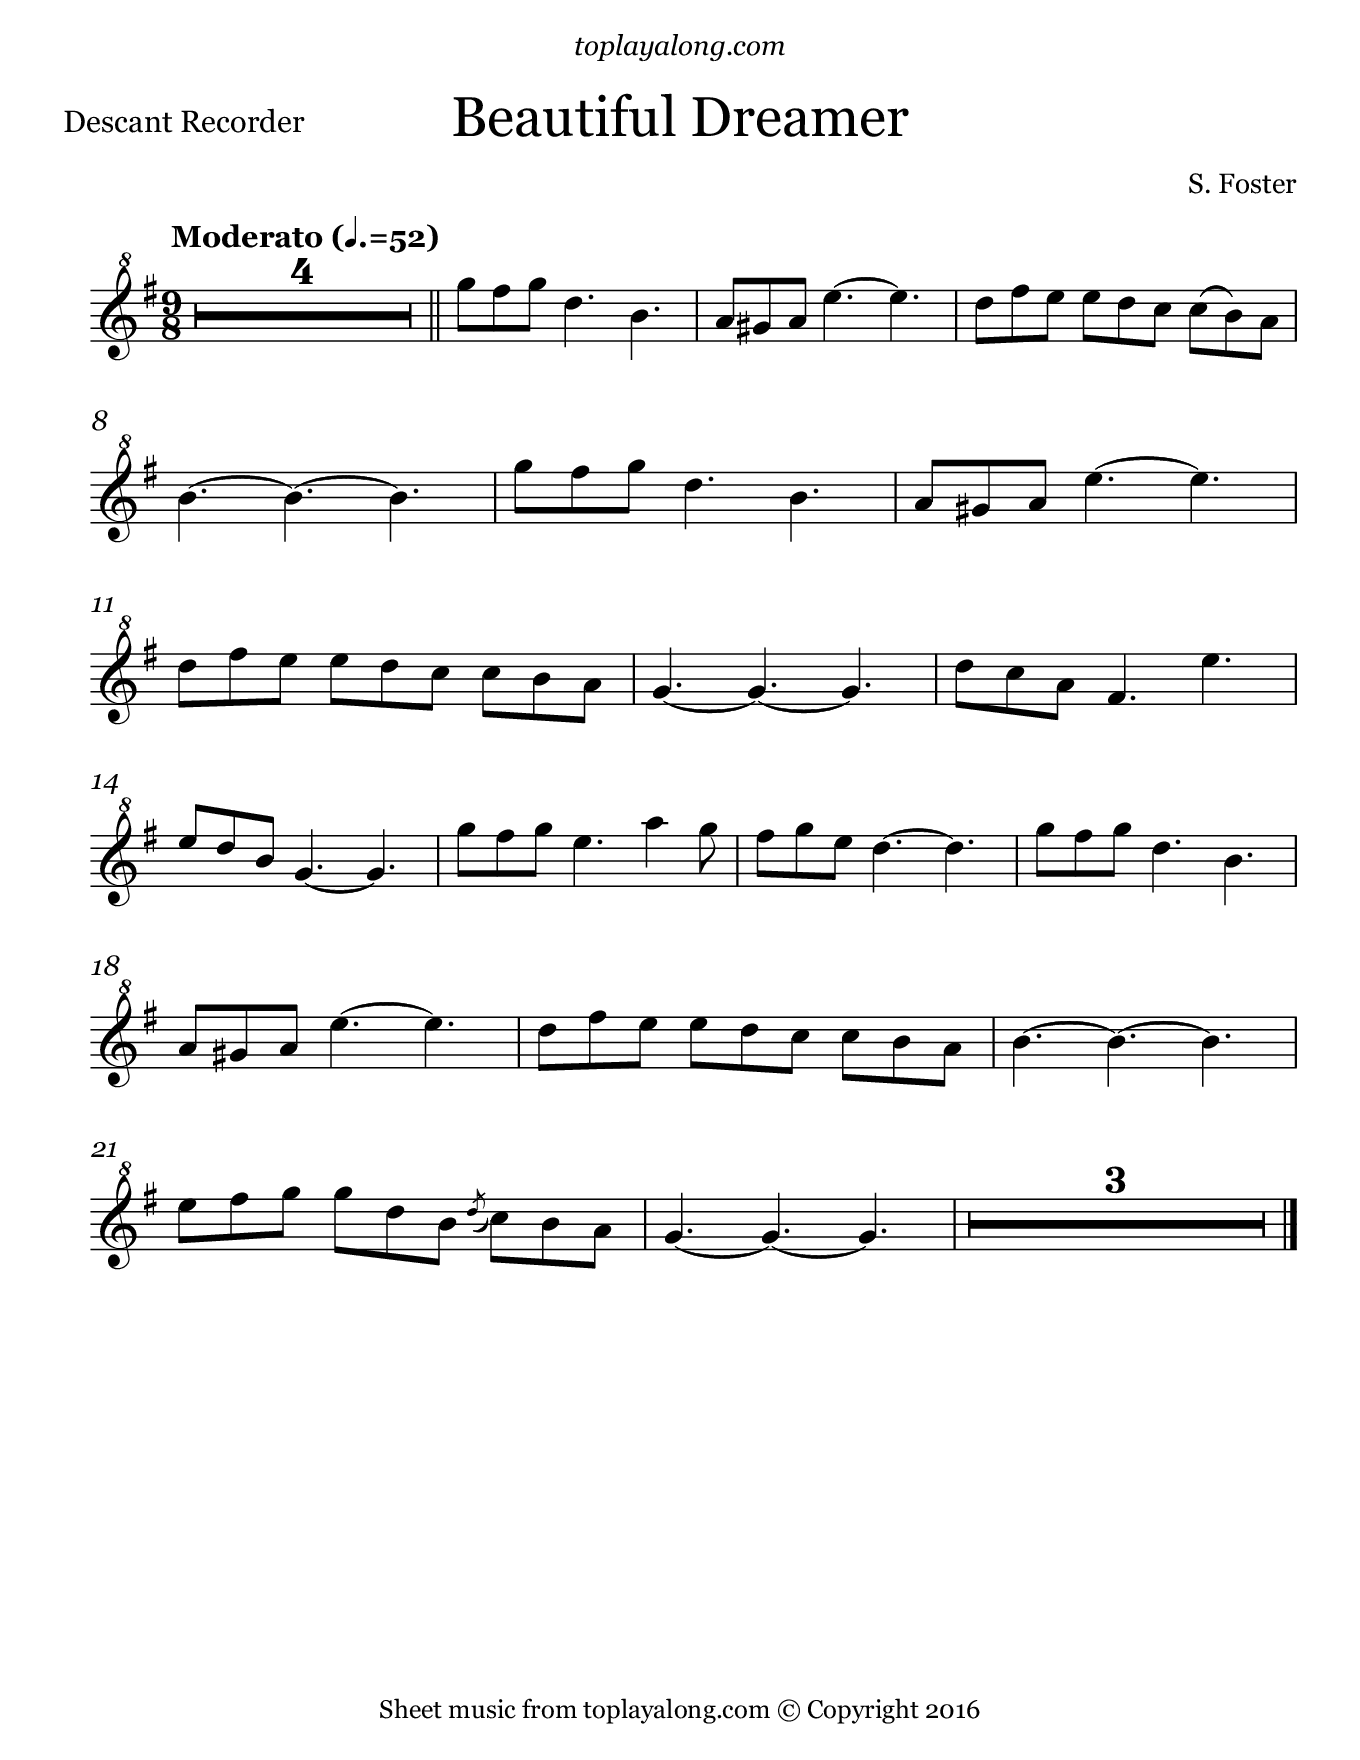 Beautiful Dreamer by Foster. Sheet music for Recorder, page 1.